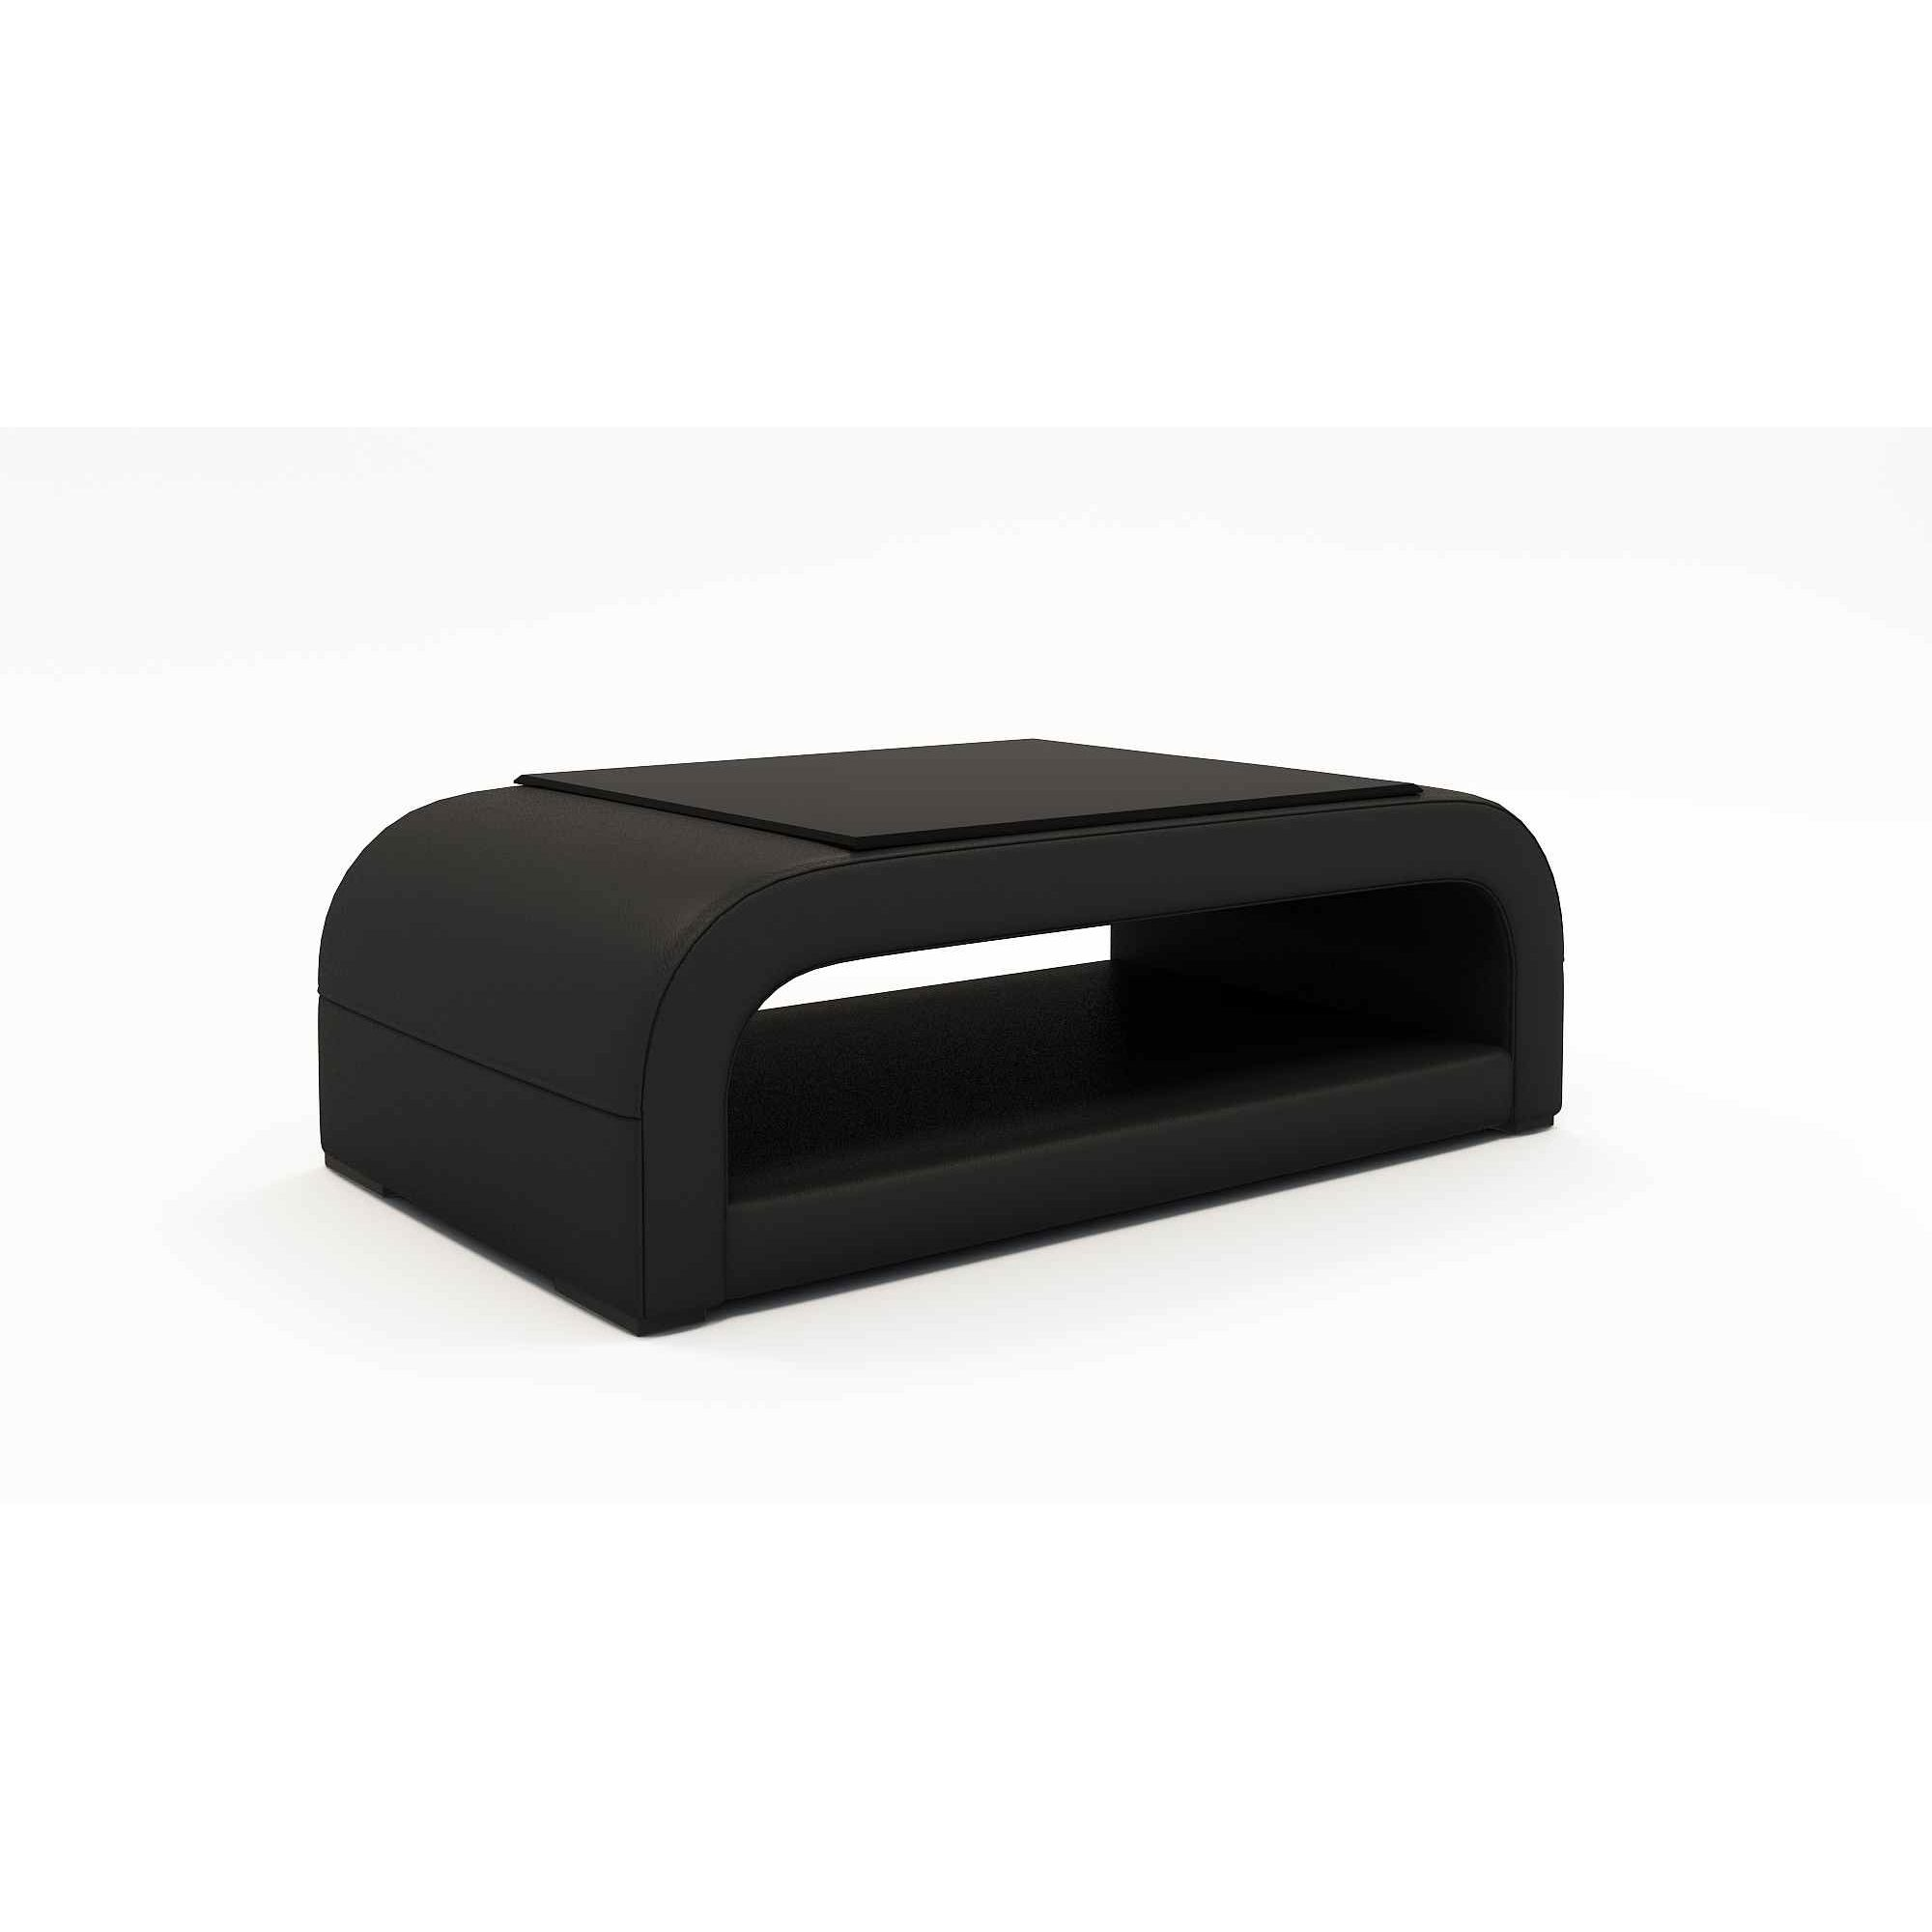 Deco in paris table basse design noir nelly nelly tab - Table basse noire design ...